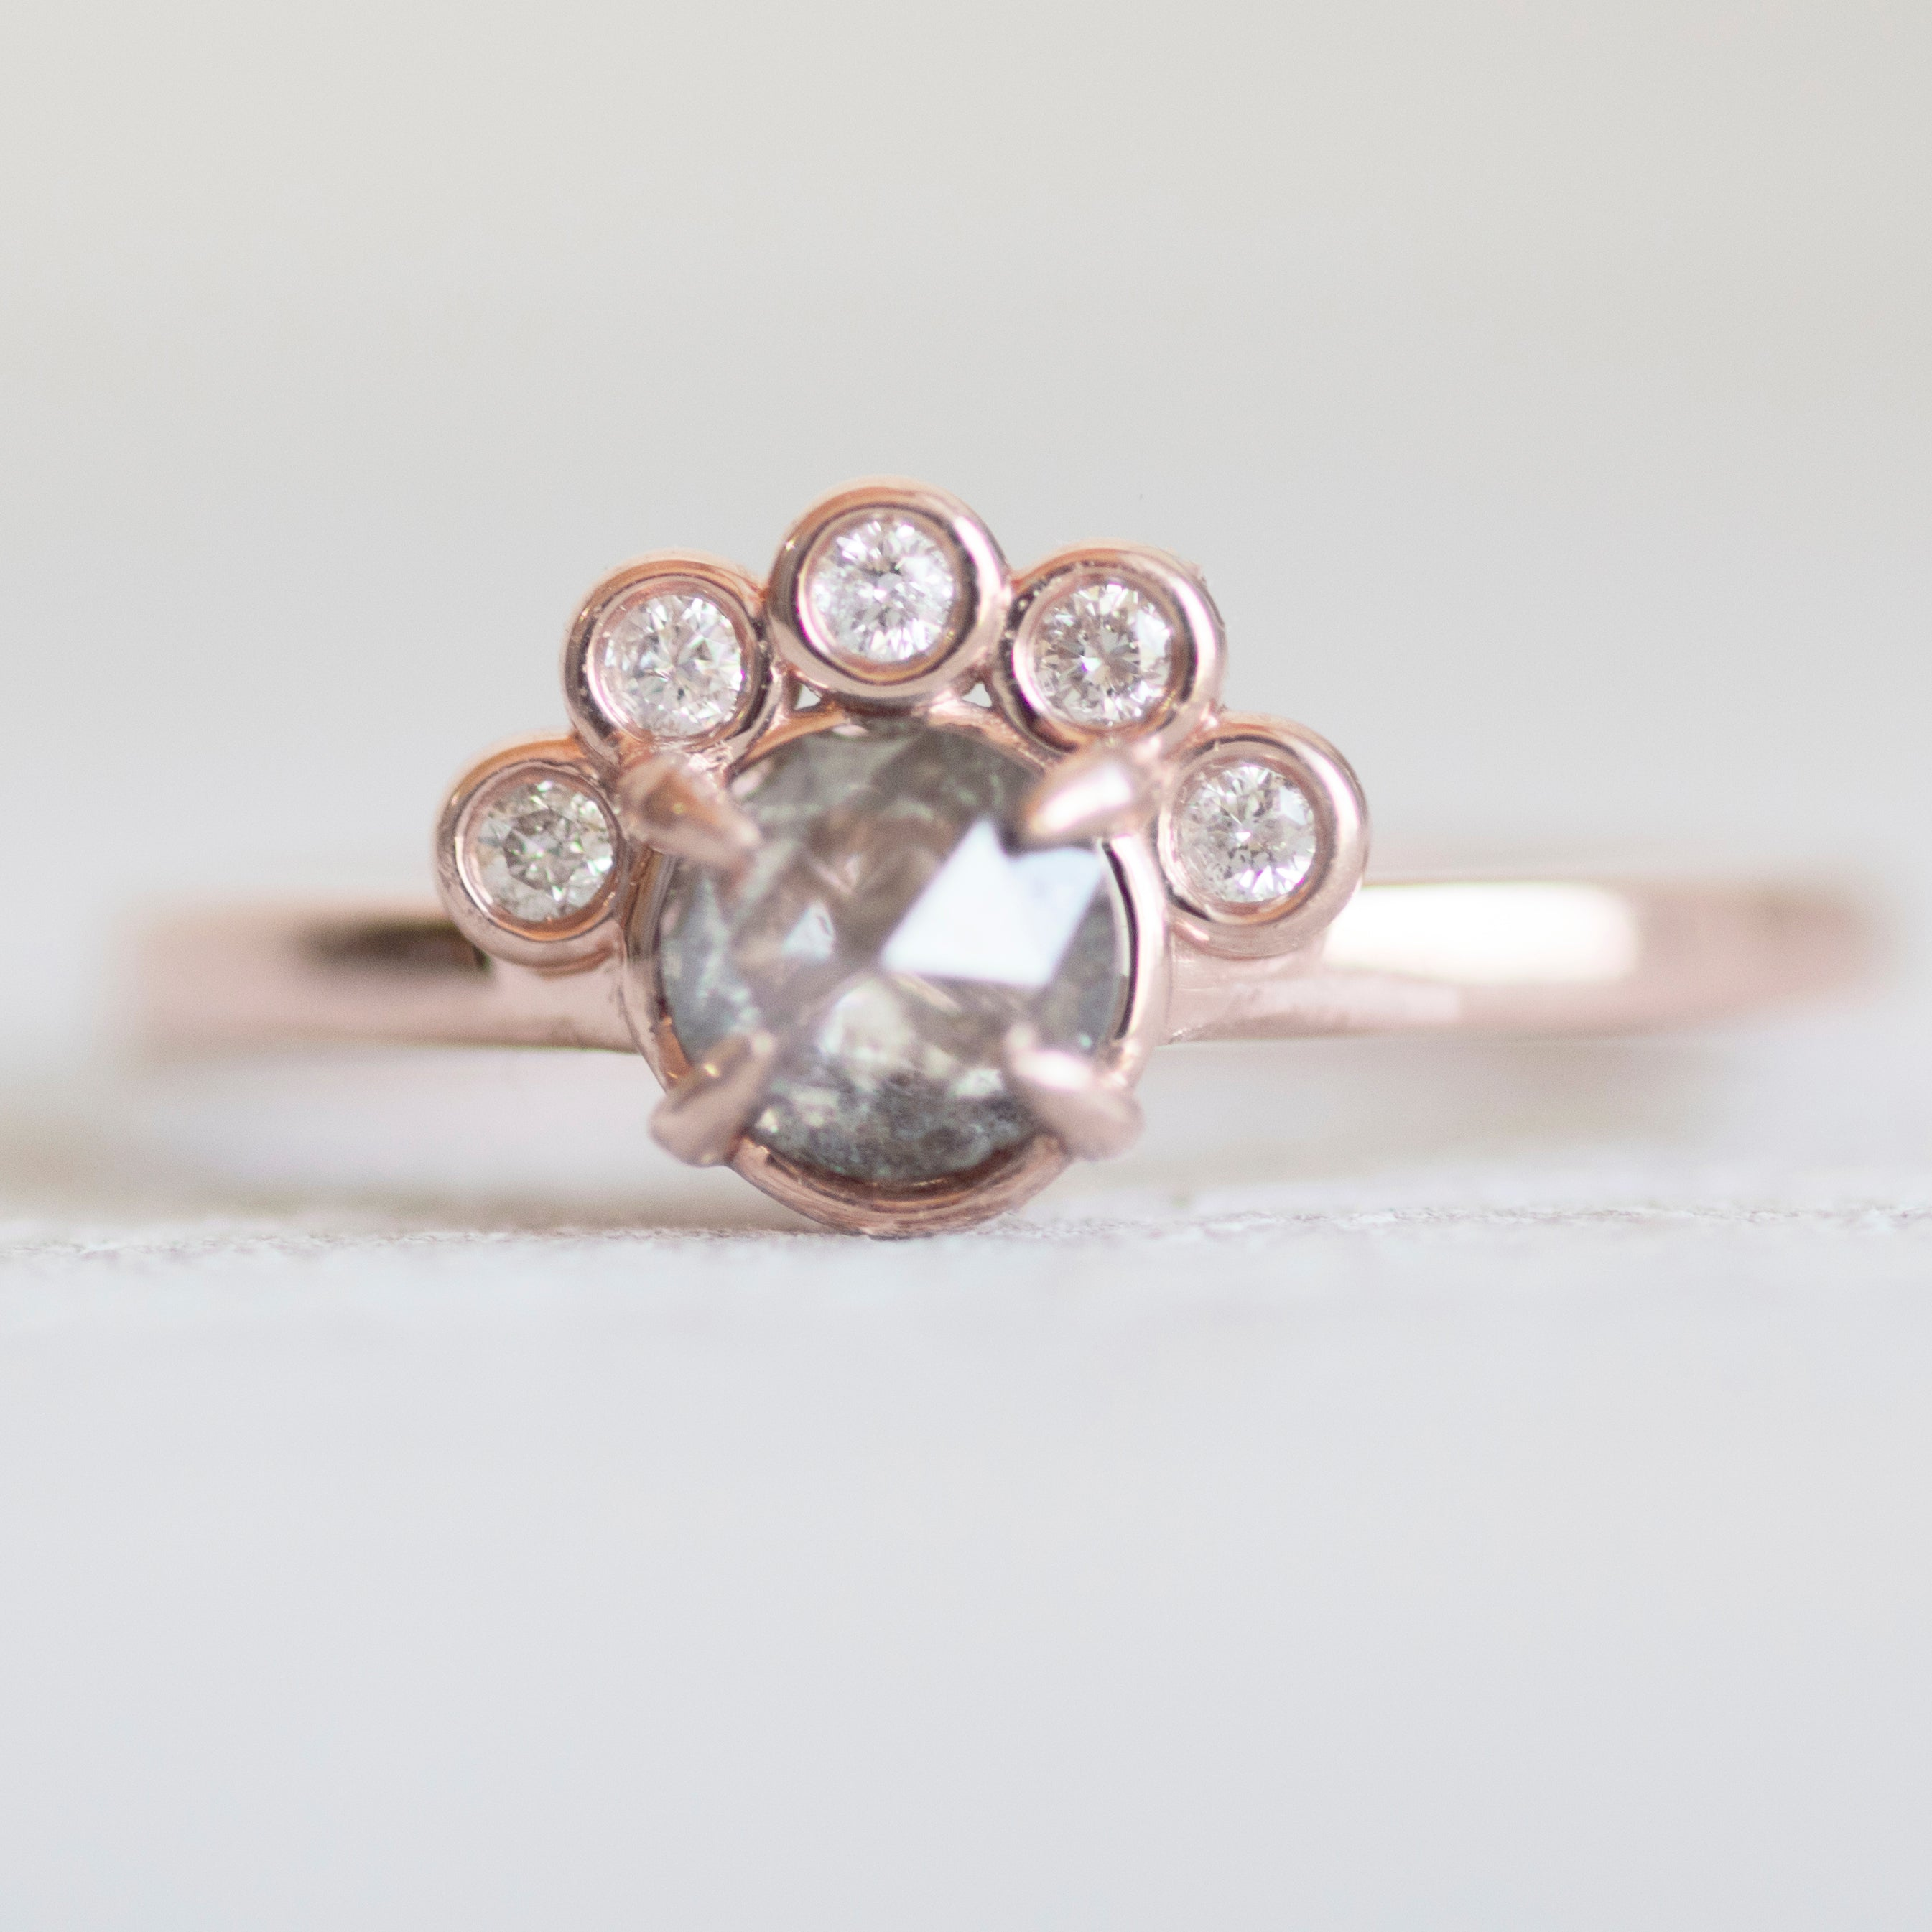 Evegwen Ring with a .45 ct Celestial Diamond® in 10k Rose Gold - Ready to size and ship - Celestial Diamonds ® by Midwinter Co.